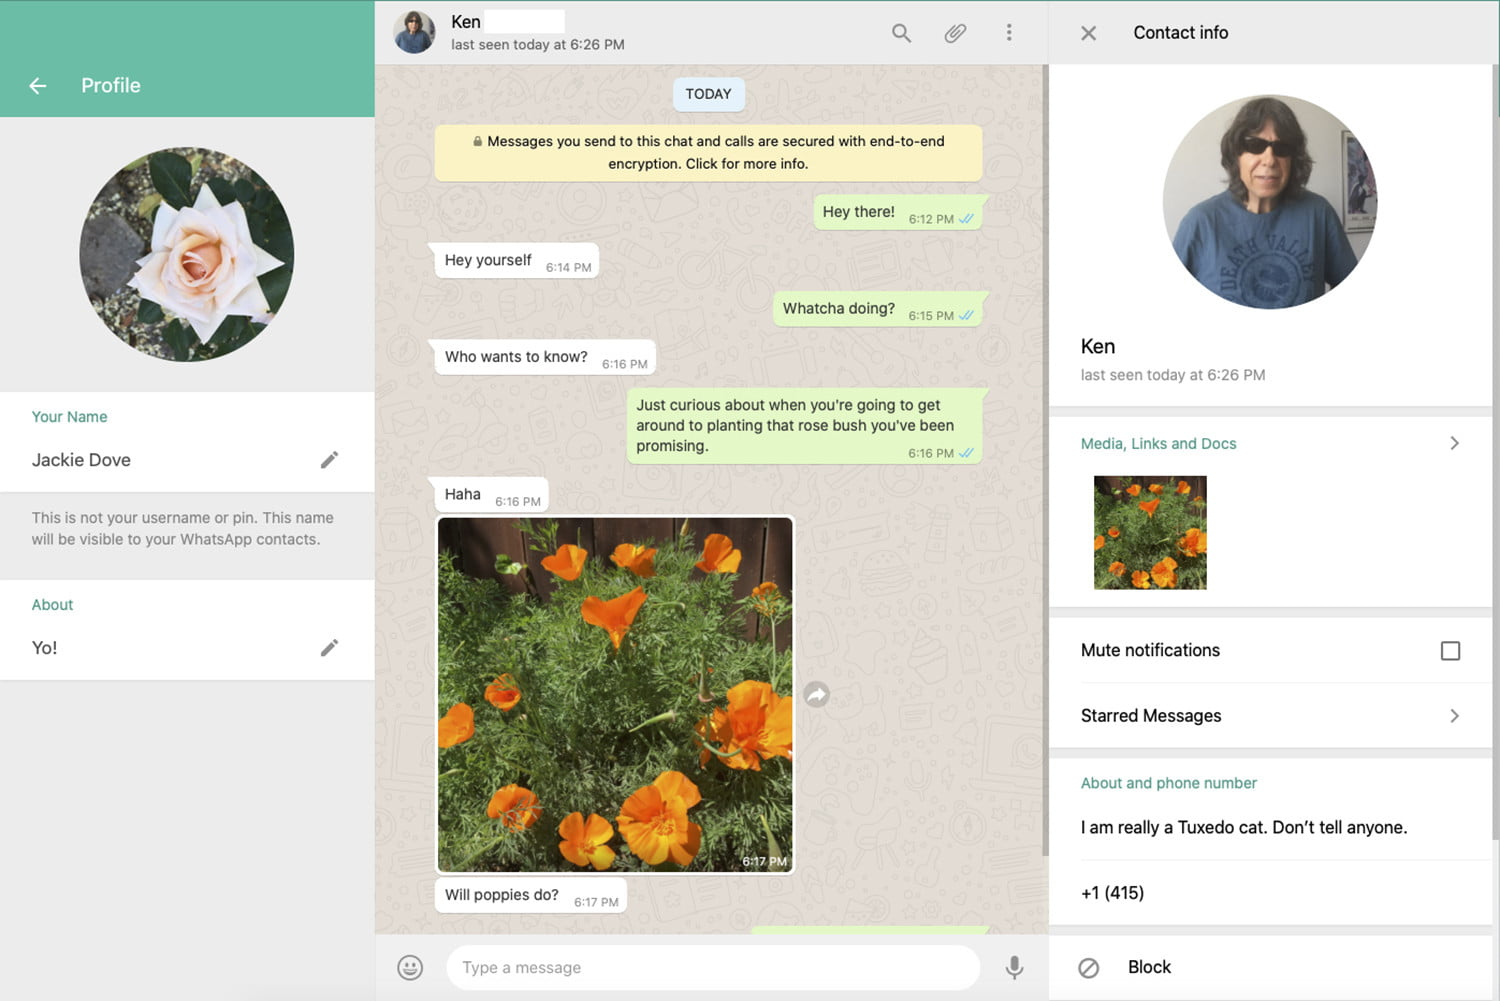 WhatsApp Web interface